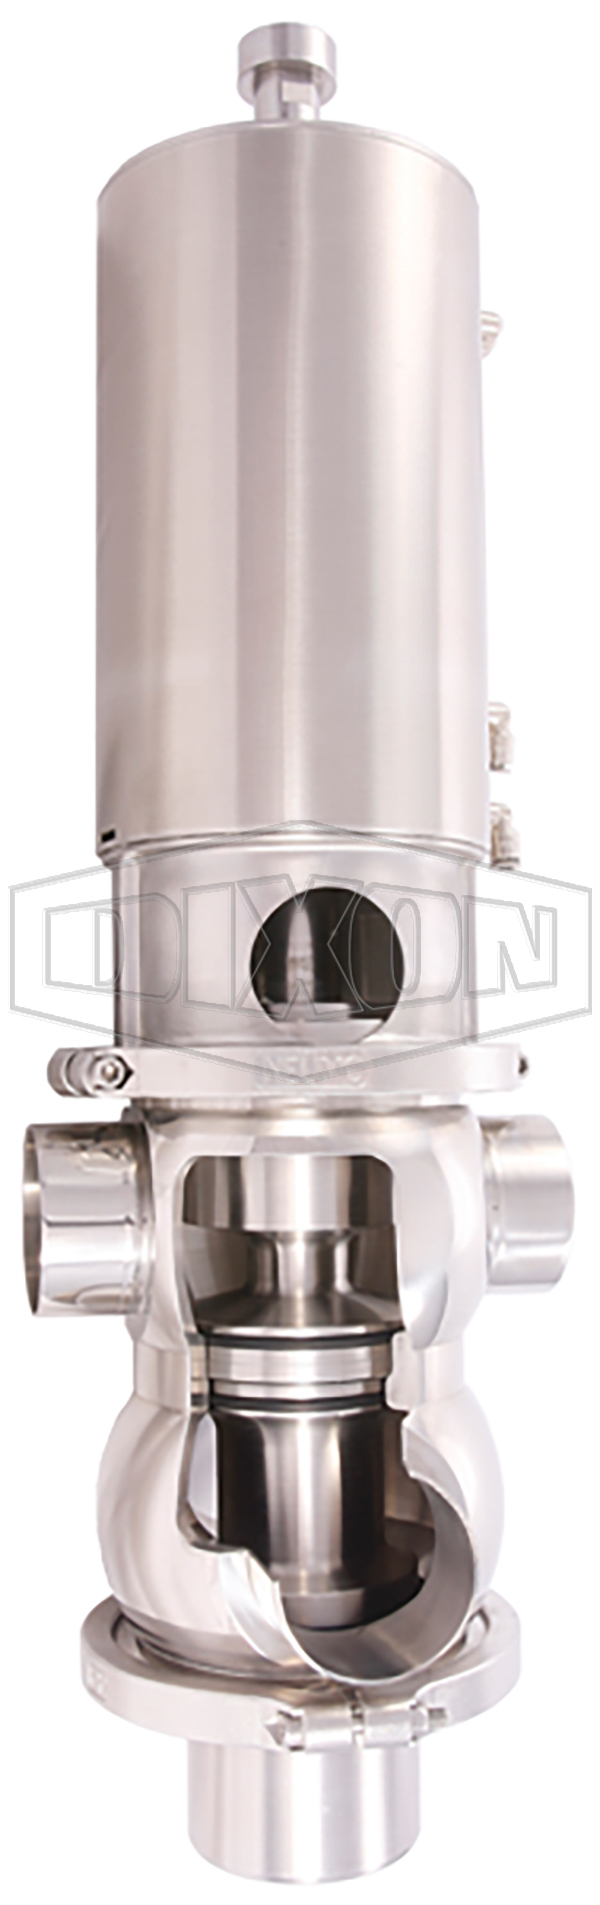 Dixon/Rieger MP-Series Mix Proof Valve